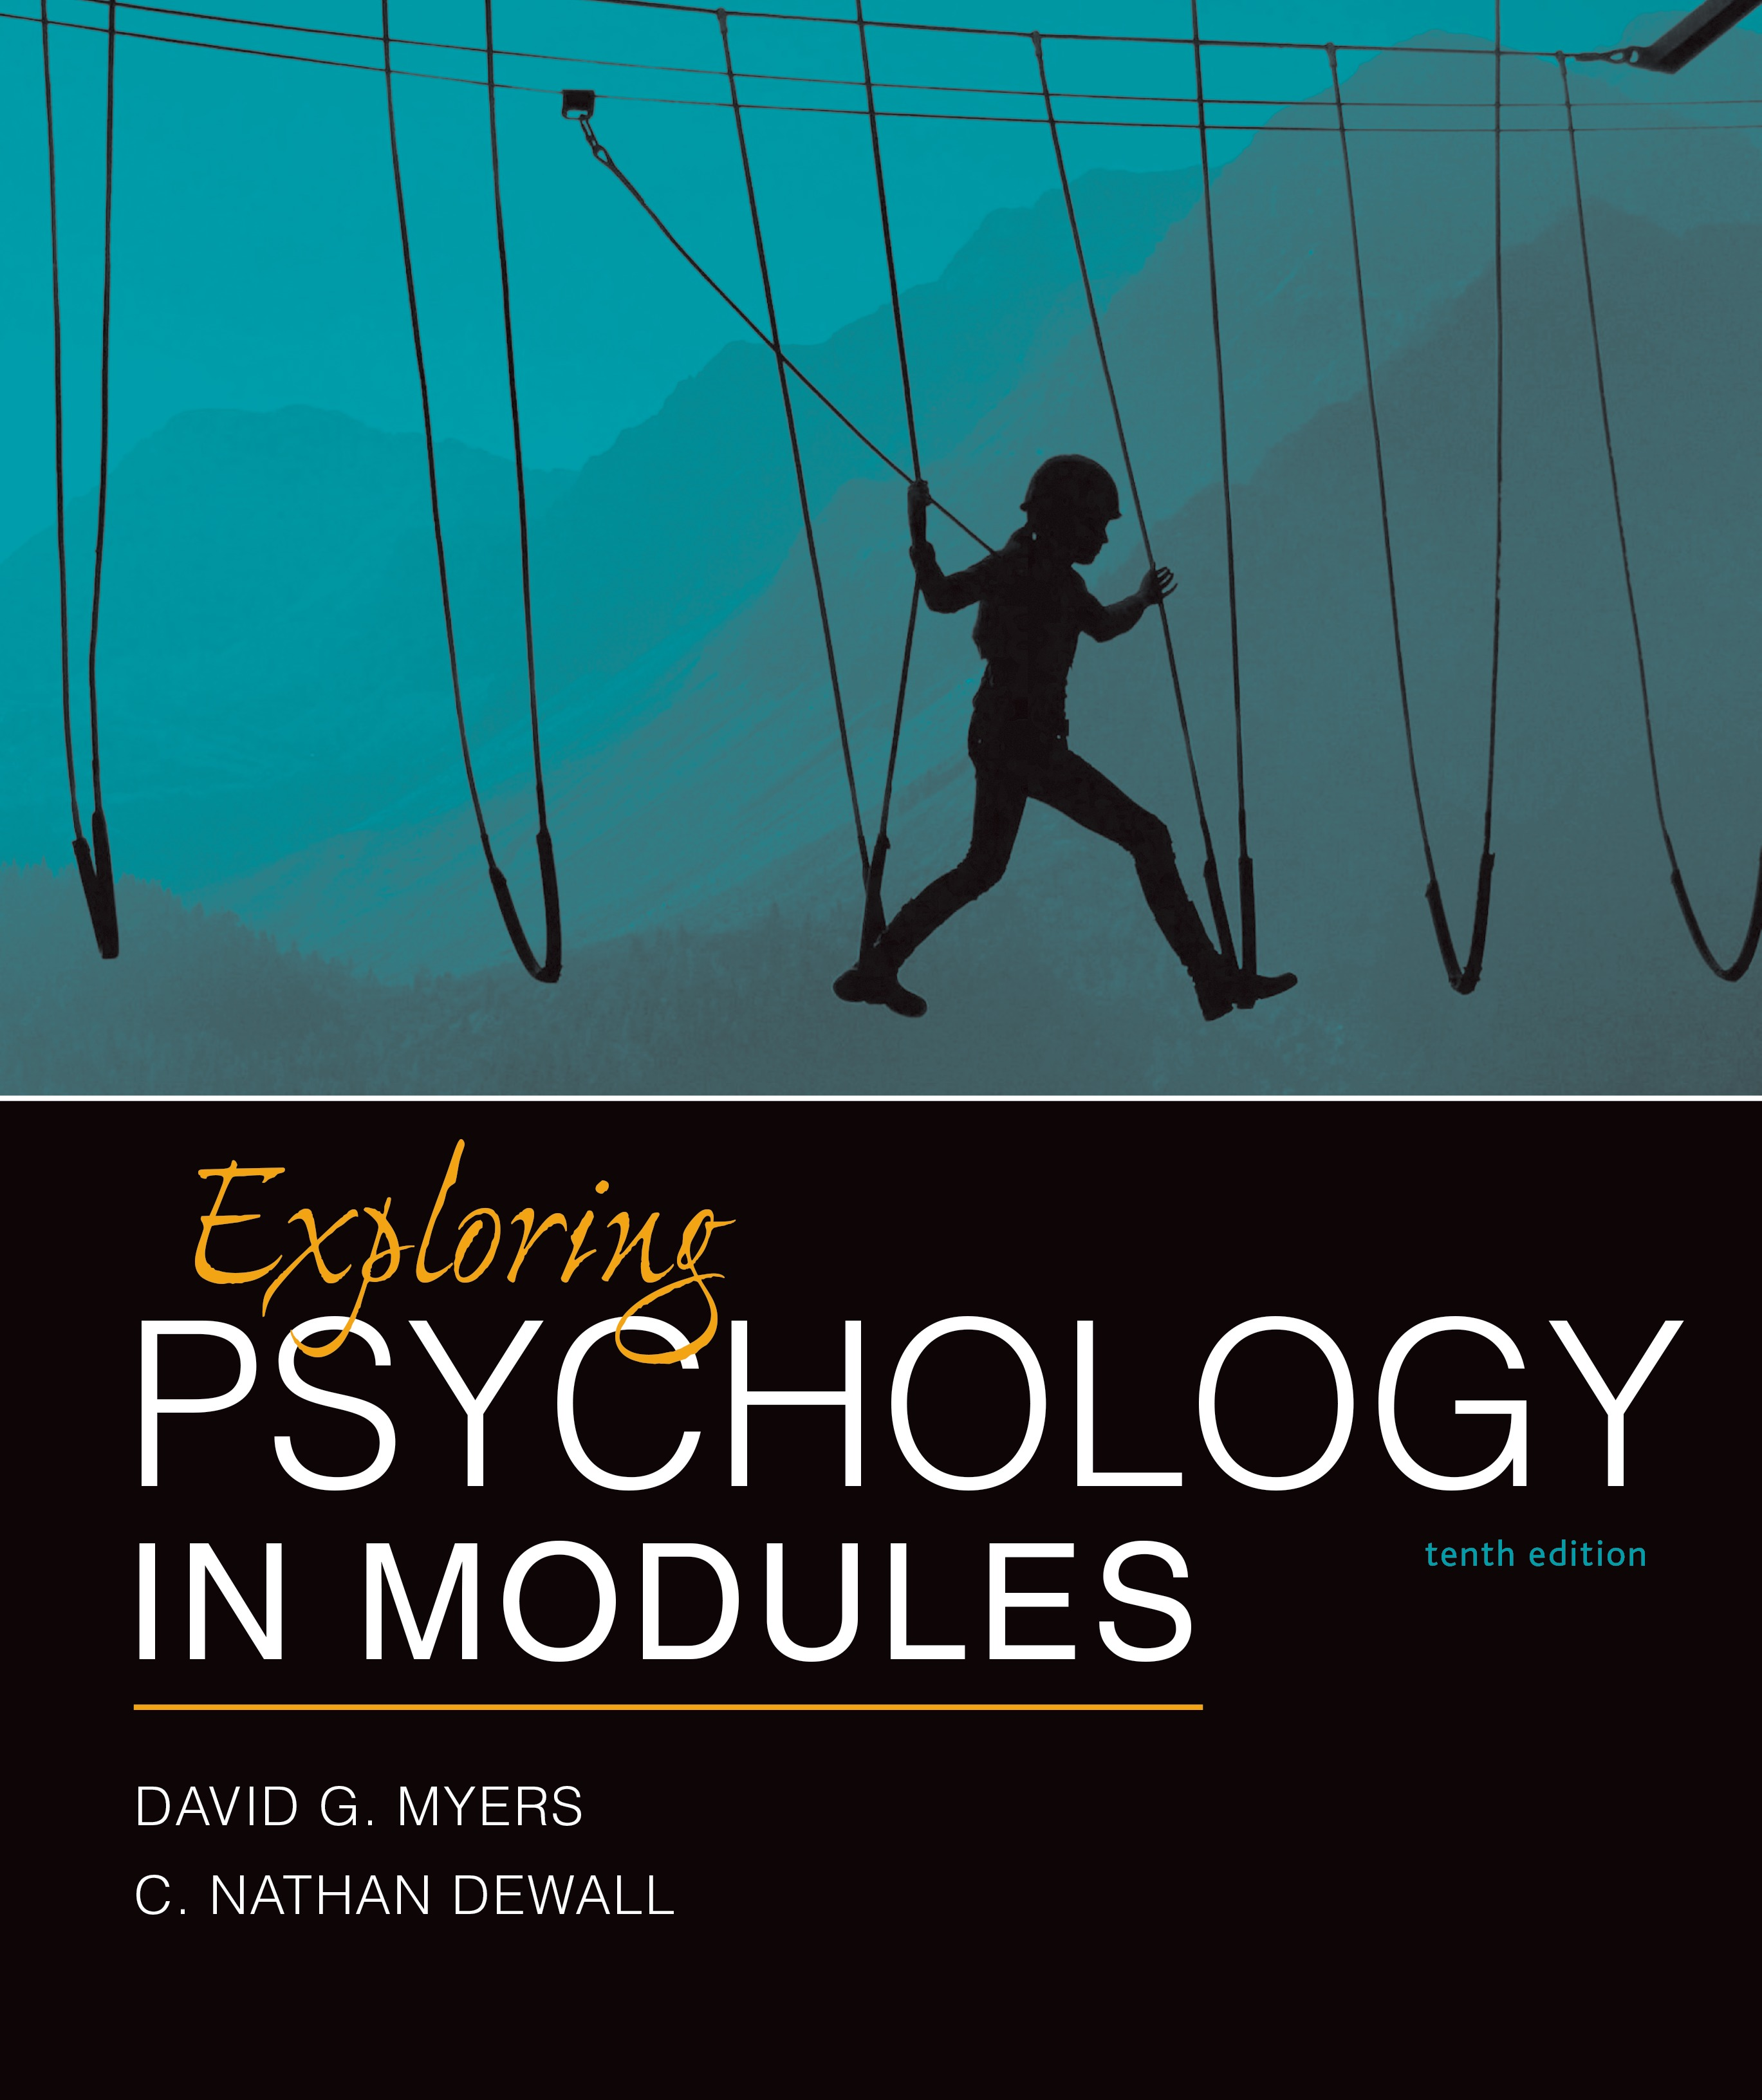 Exploring psychology in modules 9781464154386 macmillan learning talk psych with david myers2016bluebannerfinal download image fandeluxe Images